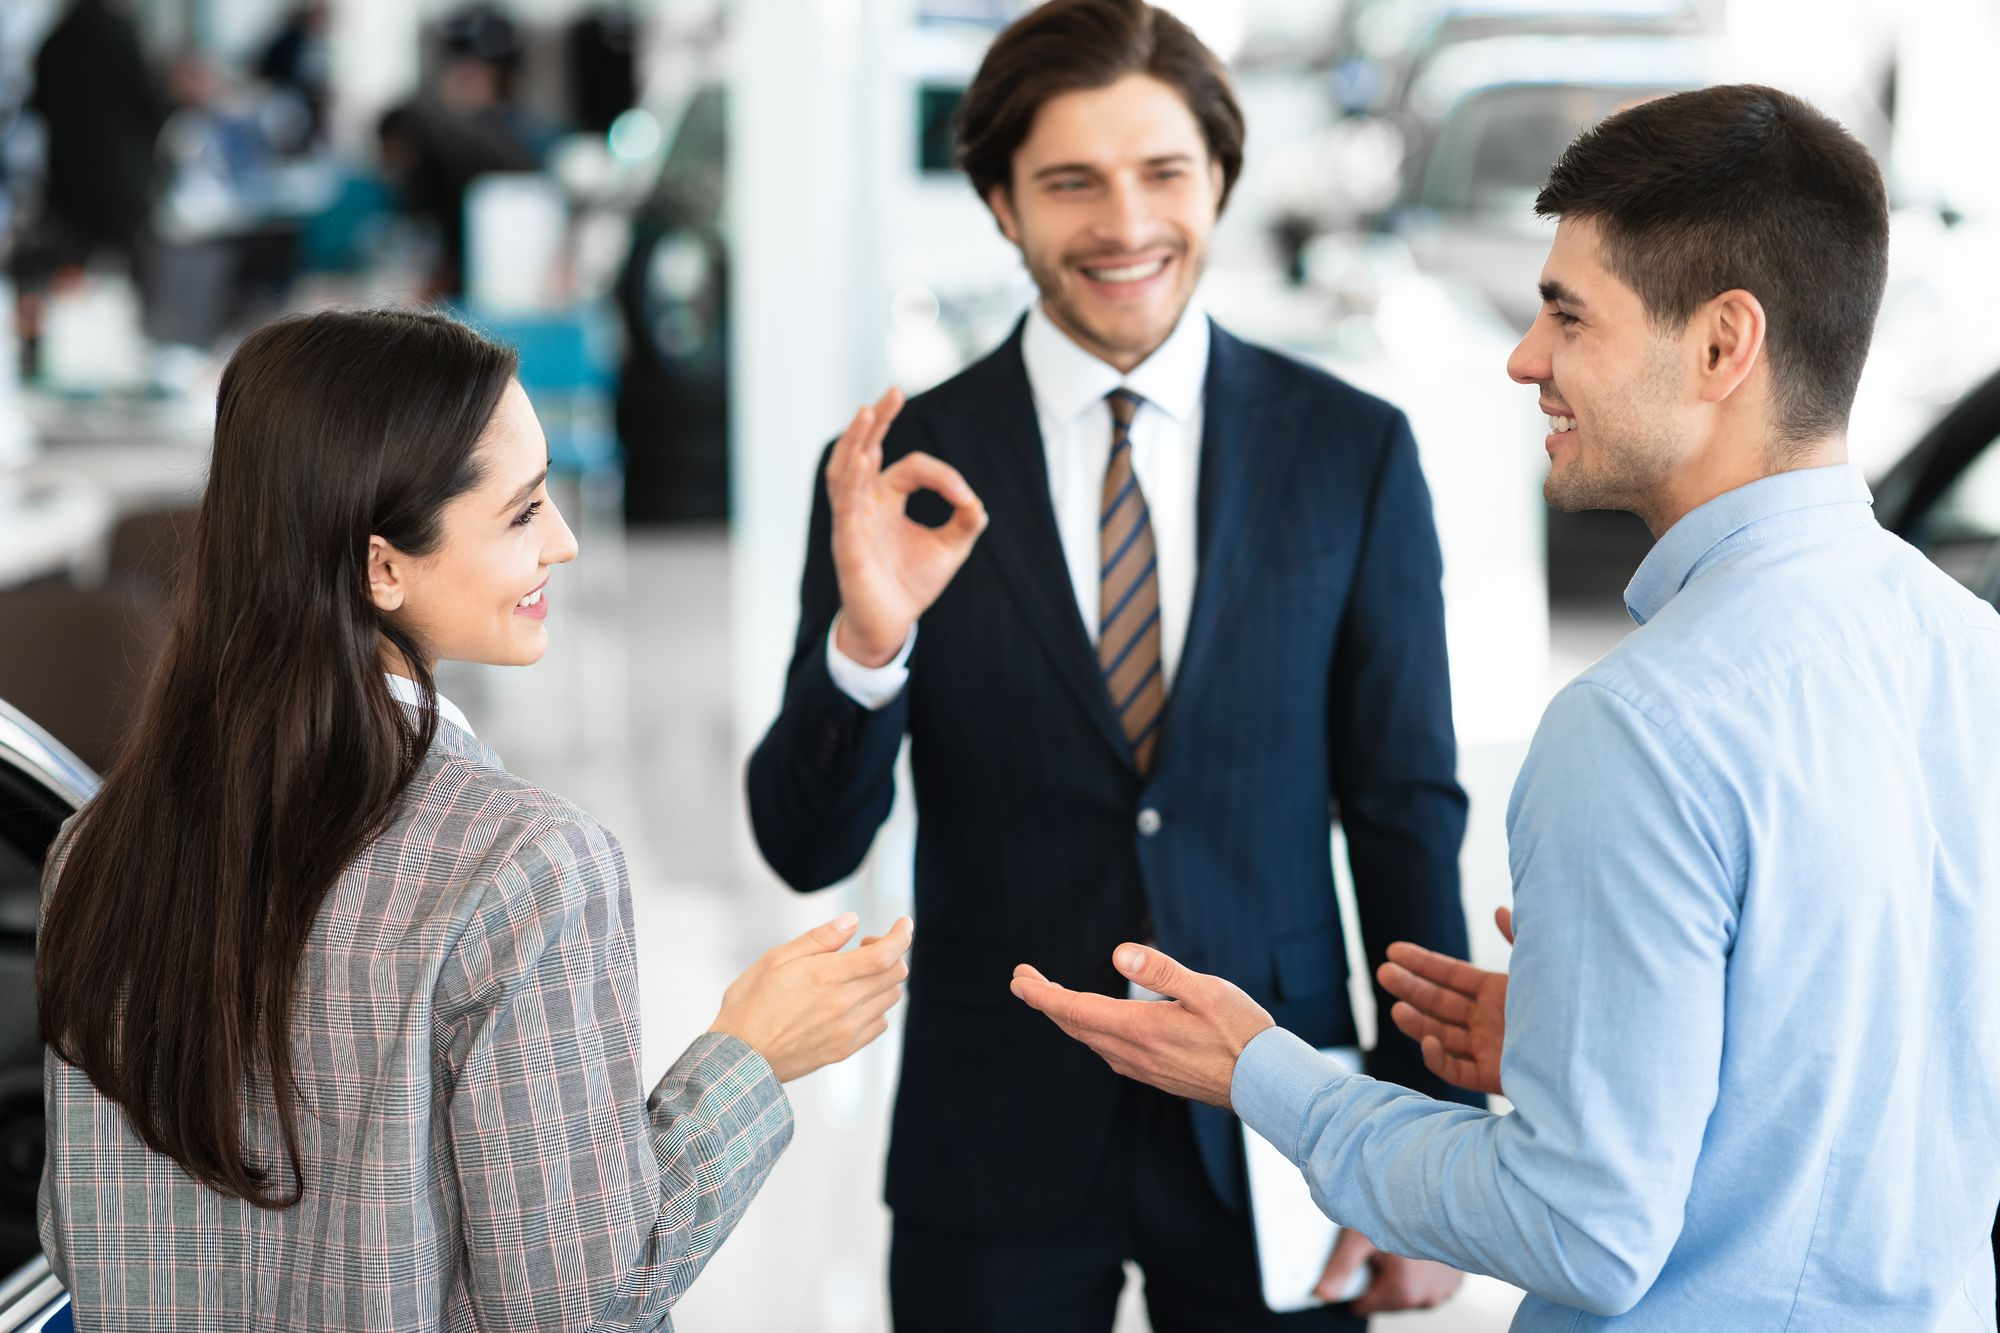 three business people buying-in an idea